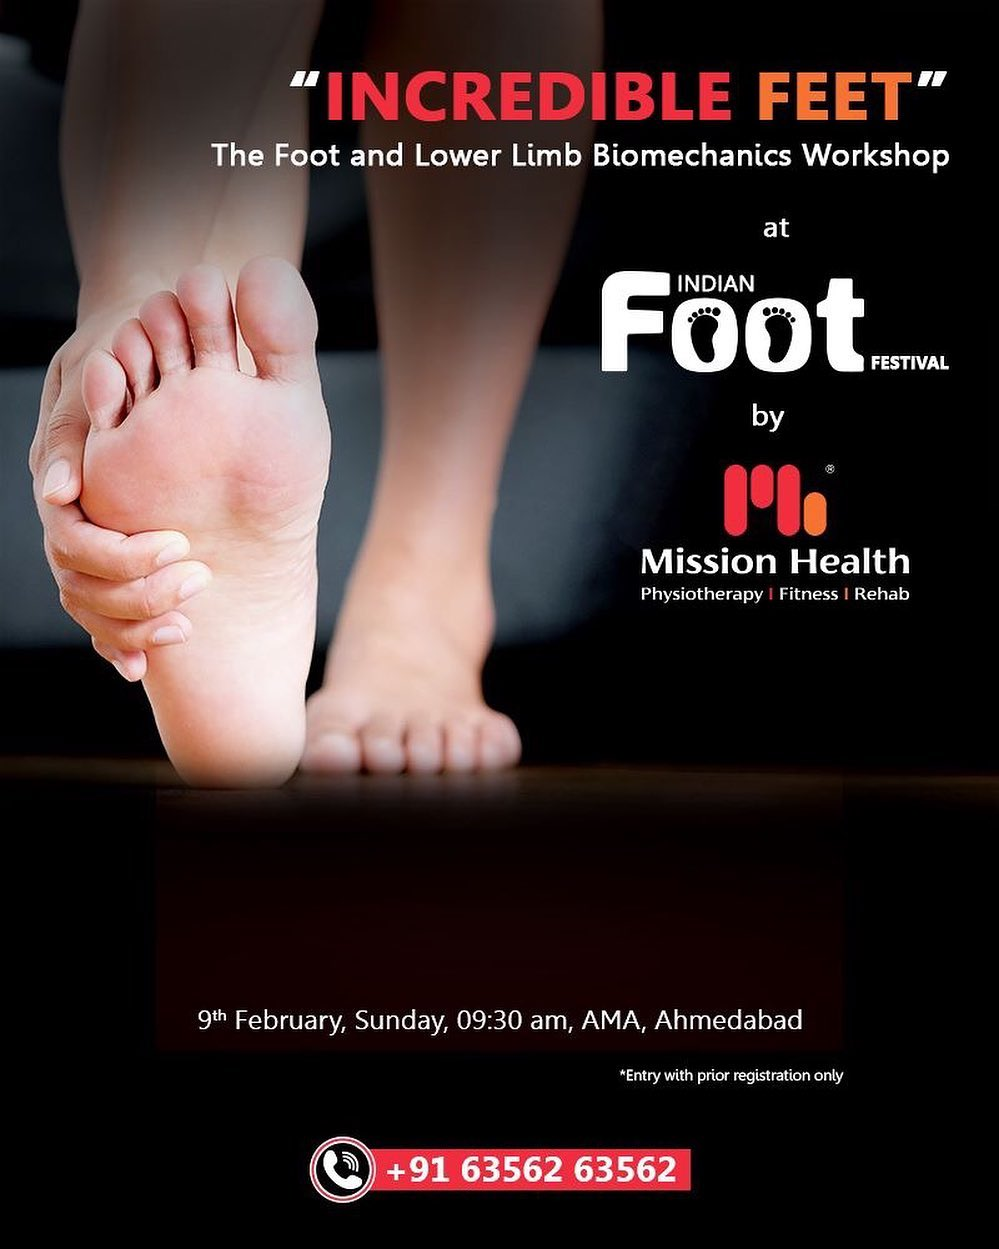 The wait is over... Time to mark your calendar to resolve any of your FOOT & Lower Limb Problems... Entry with Prior Registrations only... Keep Reading this Space... Call: +916356263562 Visit: www.missionhealth.co.in  #IndianFootFestival #ComingSoon #FootClinic #footpain #footcare #foothealth #heelpain #anklepain #flatfeet #painrelief #healthyfeet #happyfeet #MissionHealth #MissionHealthIndia #MovementIsLife